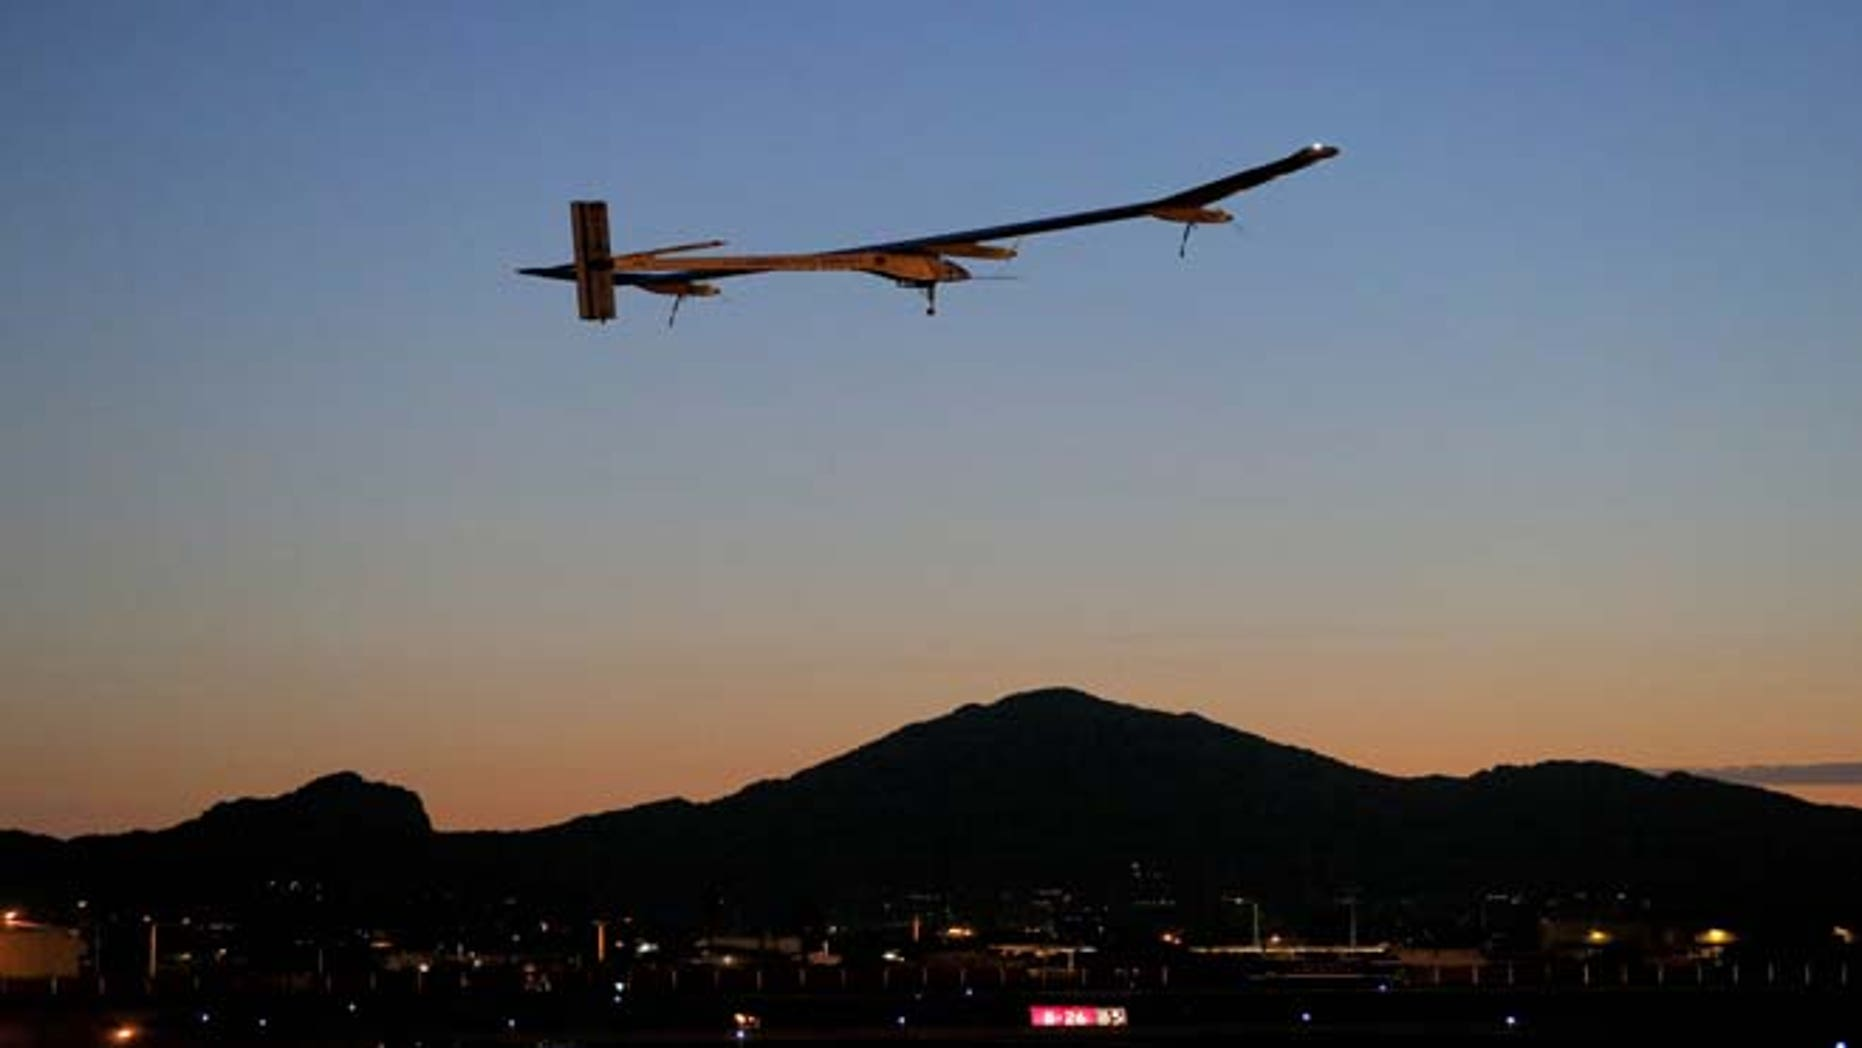 FILE - This May 22, 2013 file photo shows the Solar Impulse, piloted by André Borschberg, taking flight, at dawn, from Sky Harbor International Airport in Phoenix. The spindly no-fuel plane called Solar Impulse is scheduled to leave Washington Saturday early in the morning and arrive after midnight at New York's John F. Kennedy International Airport. It may silently buzz the Statue of Liberty on the way. The plane started its cross-country journey May 3 from San Francisco.